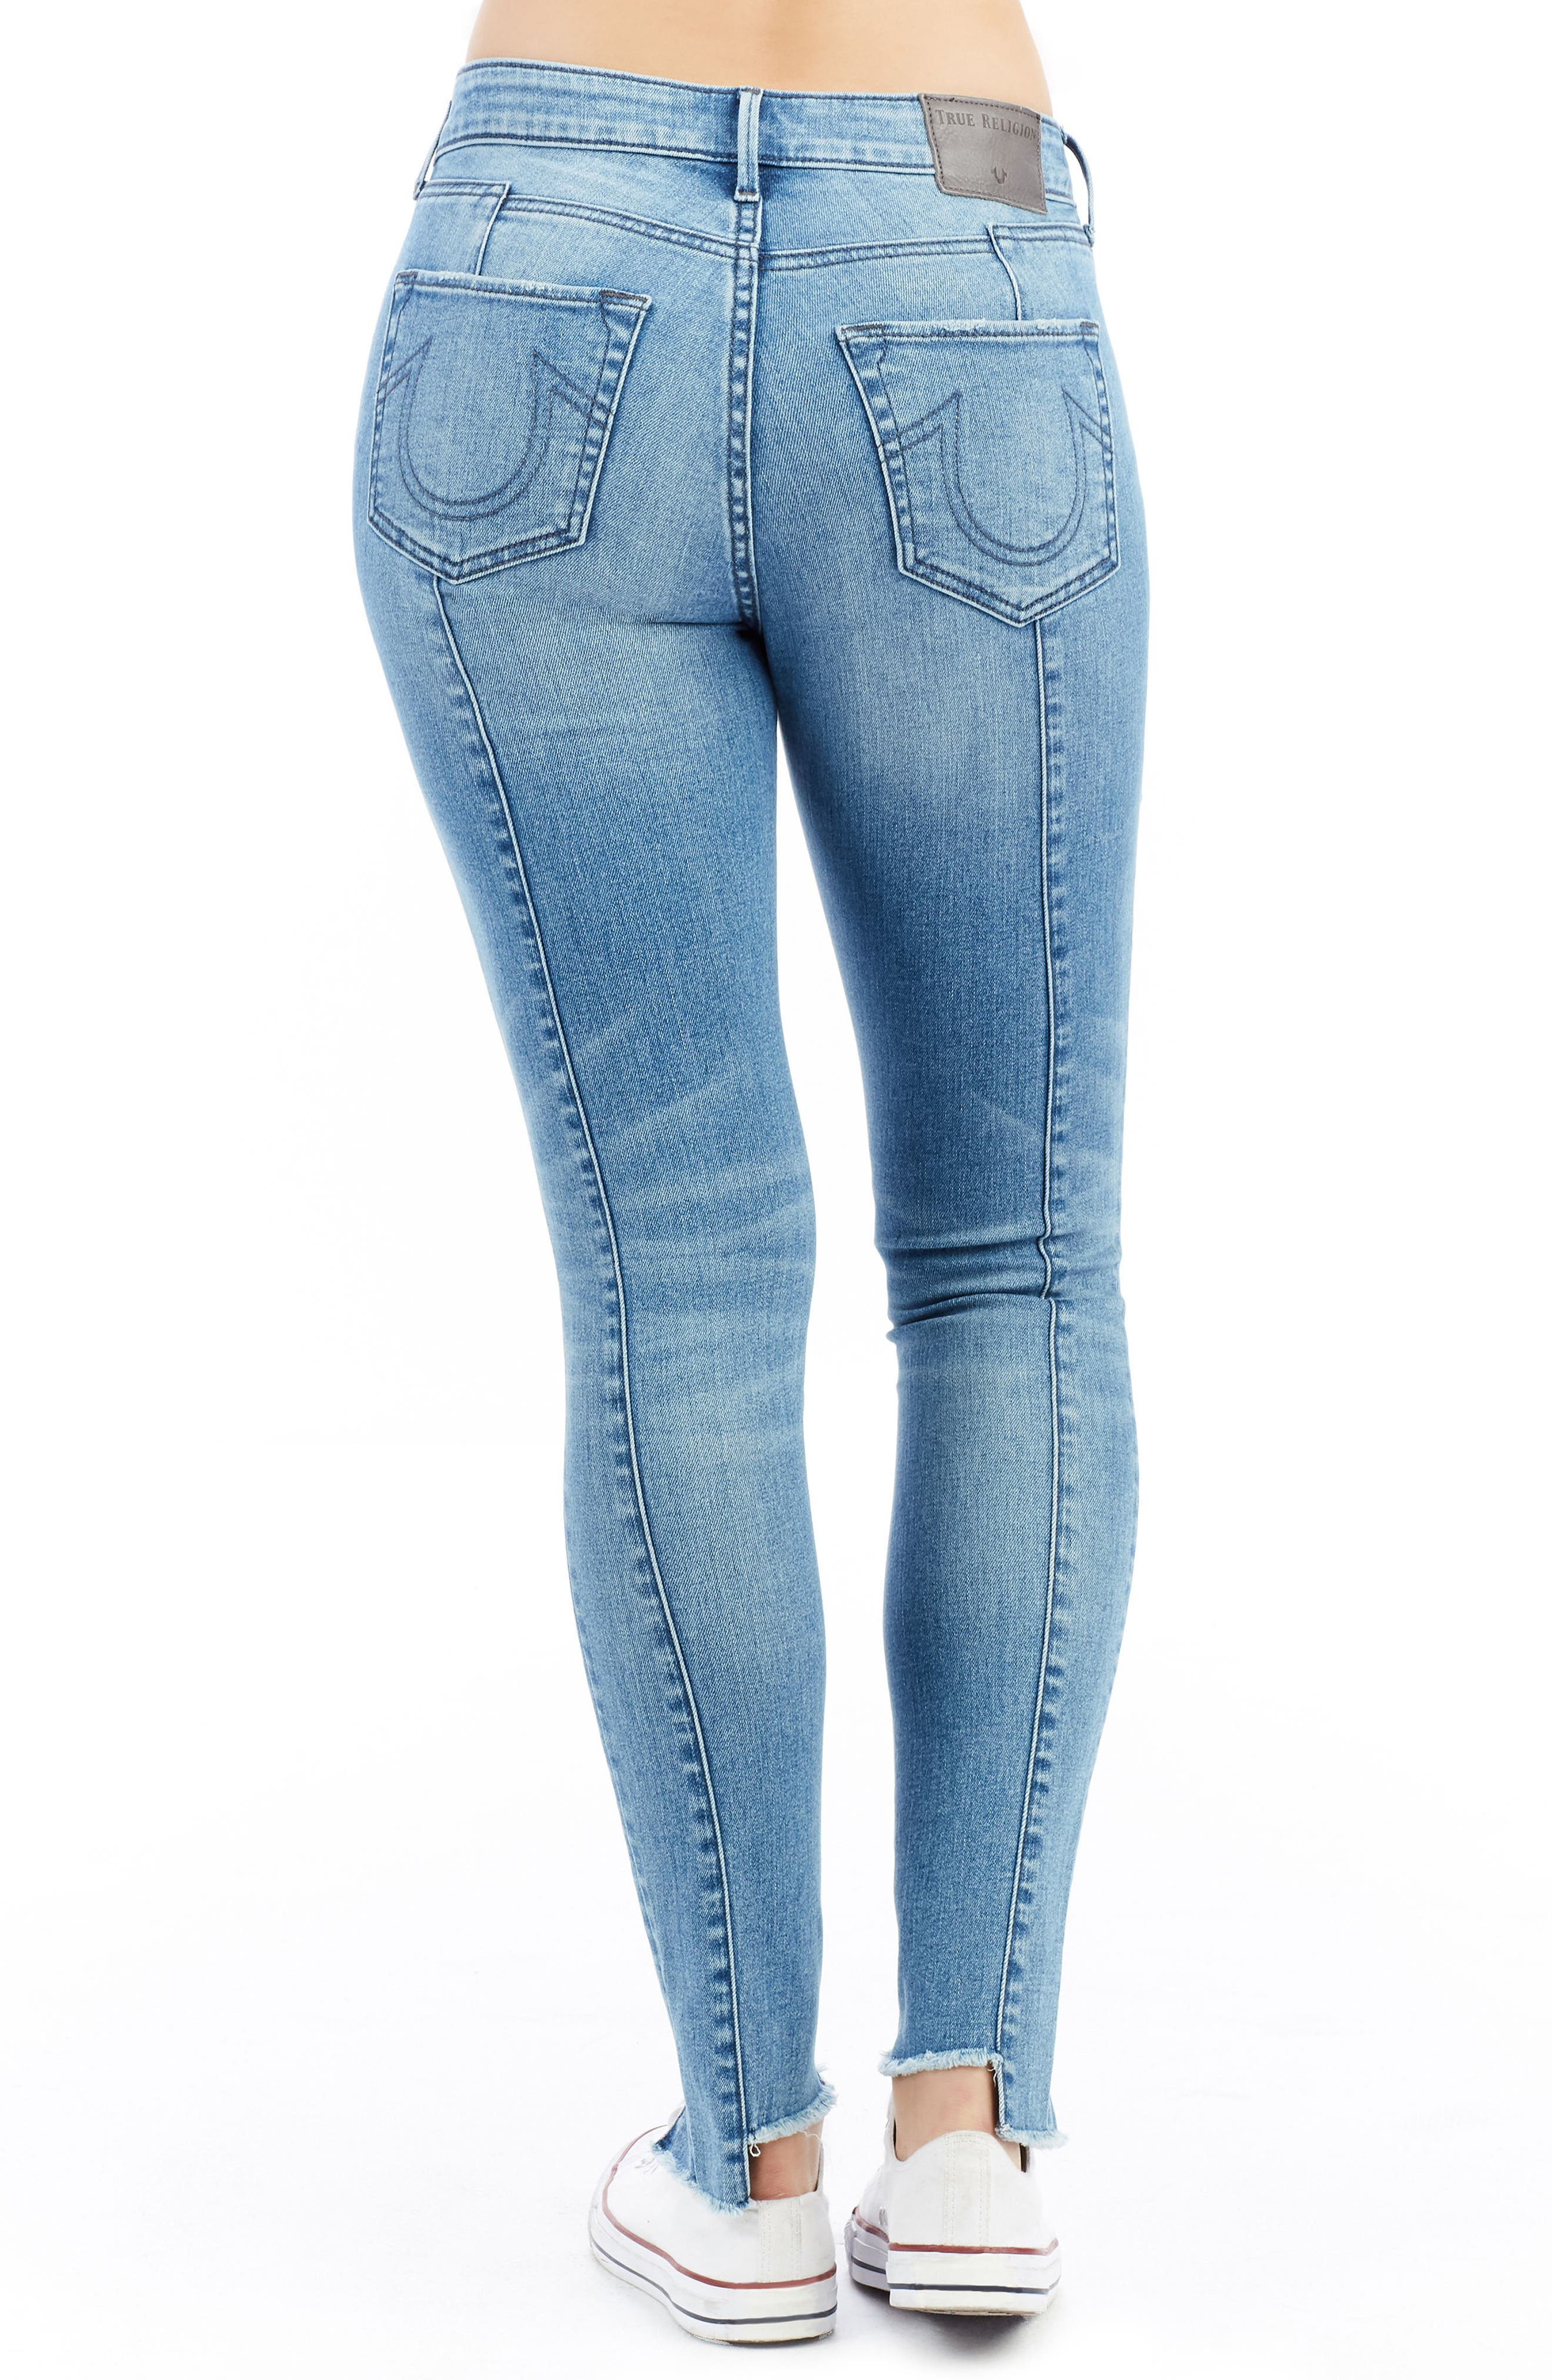 Jennie Curvy Ankle Skinny Jeans,                             Alternate thumbnail 3, color,                             Island Fever